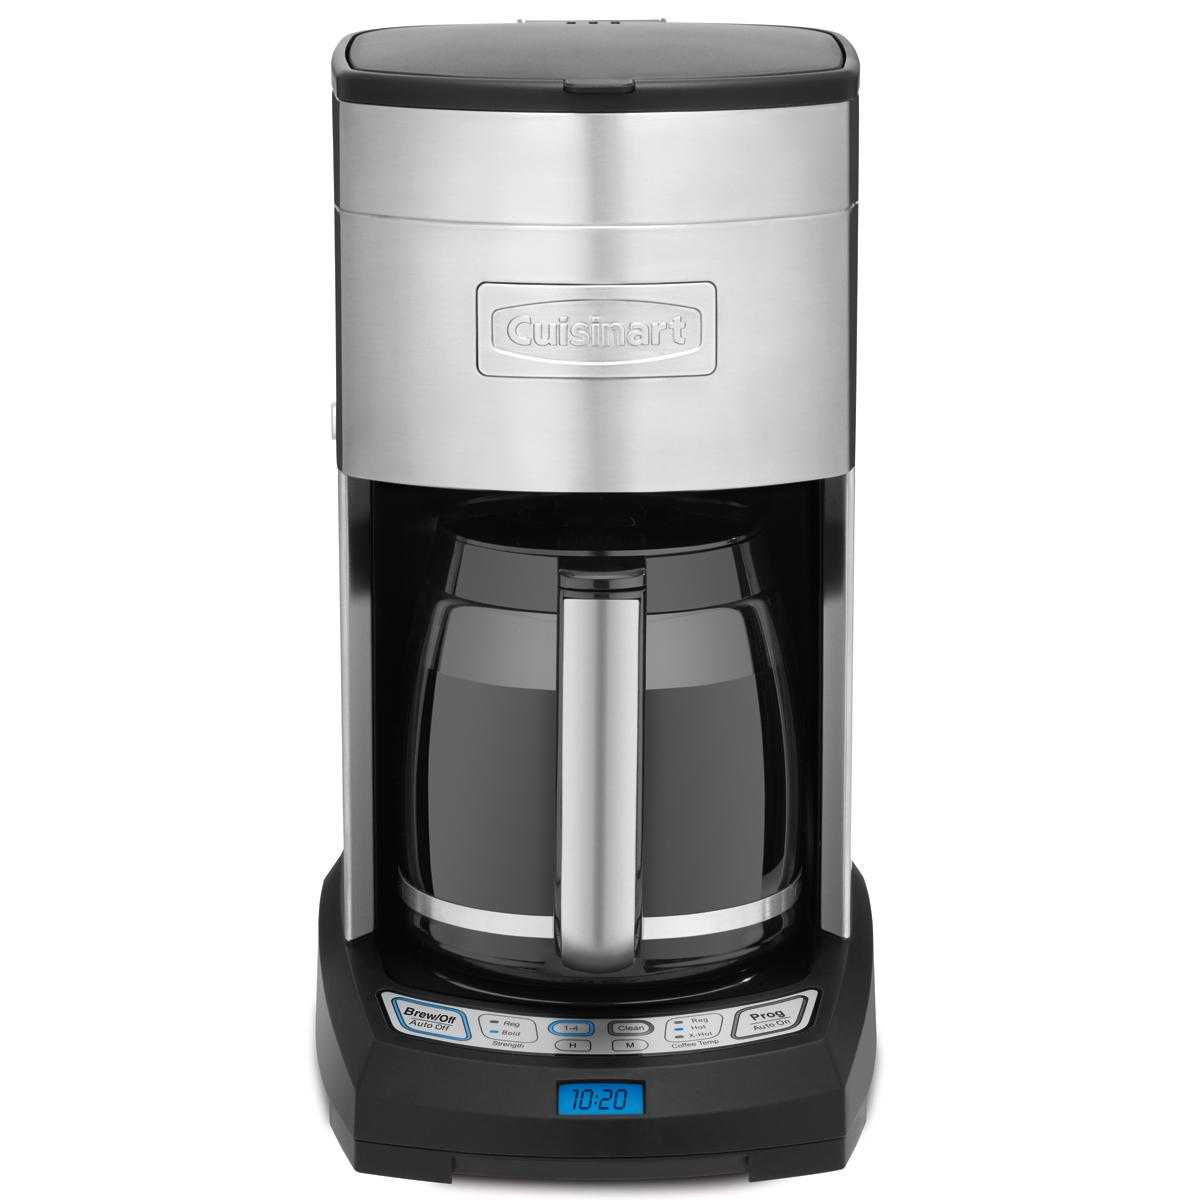 Coffee Pot Recall Cuisinart : Cuisinart Extreme Brew 12cup Coffeemaker DCC-3650C - Ad#: 4951323 - Addoway